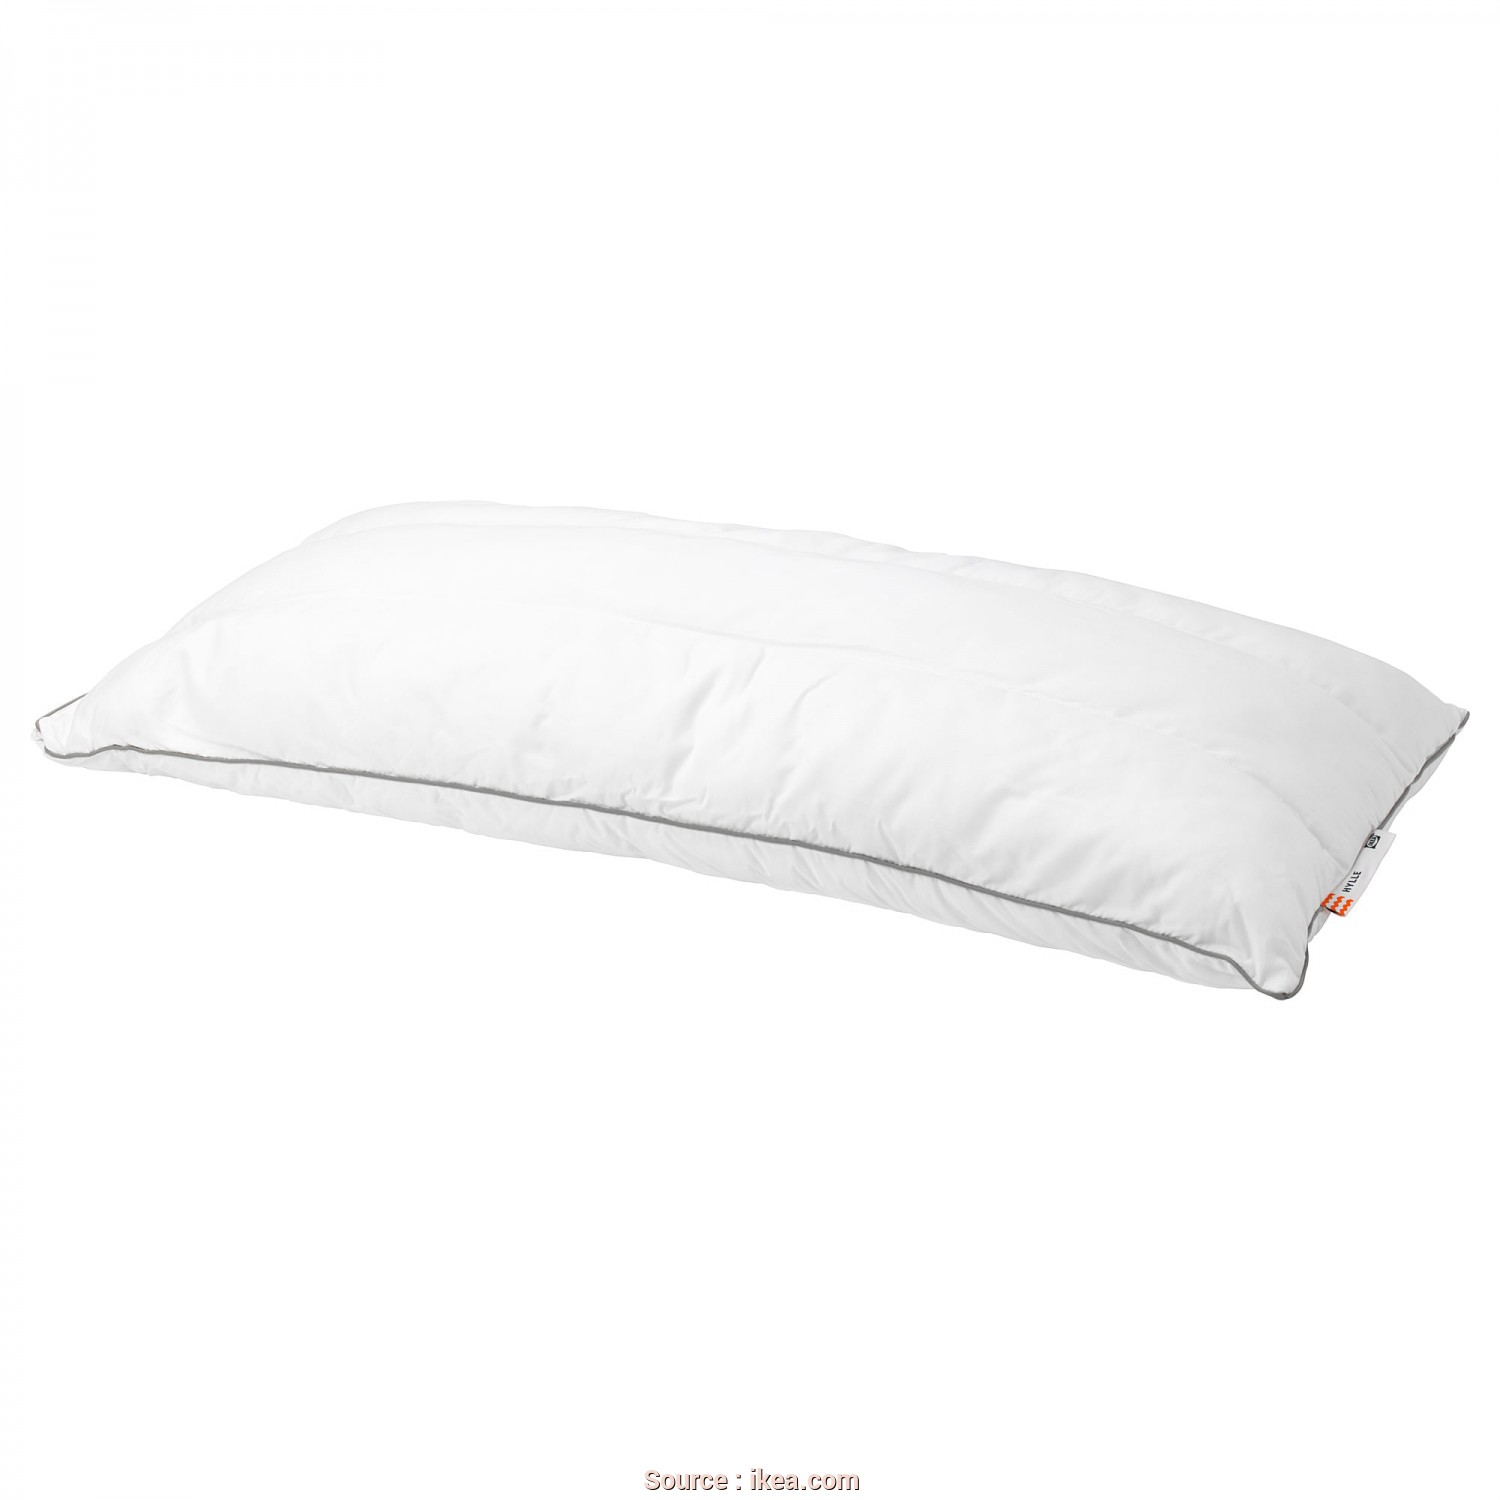 Cuscino Elsebet Ikea, Rustico IKEA HYLLE Pillow, Softer